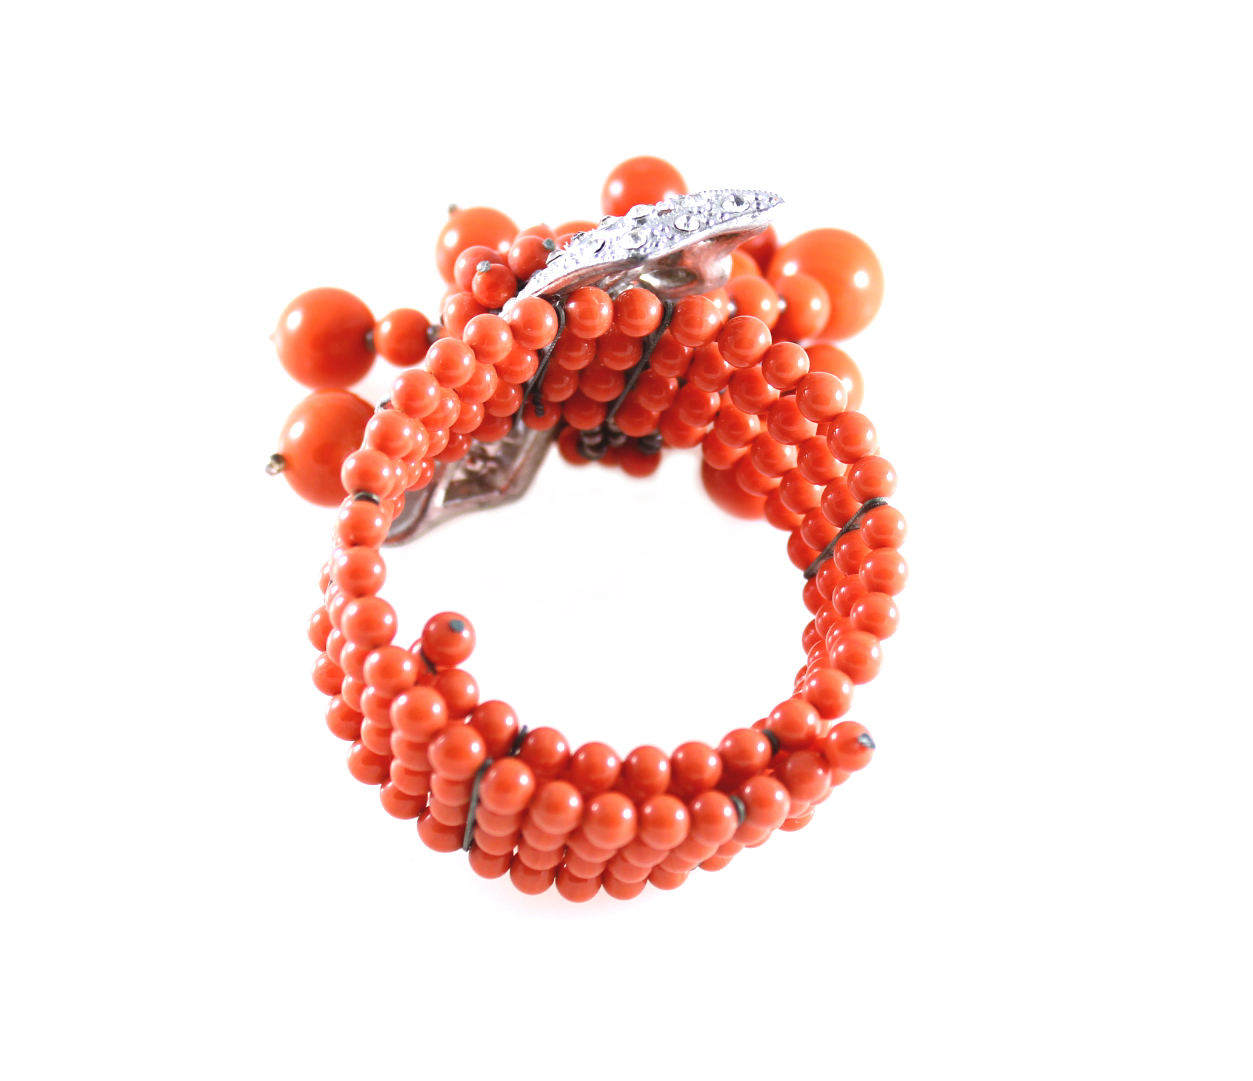 Vintage Miriam Haskell Frank Hess Wrap Coral Glass Bead